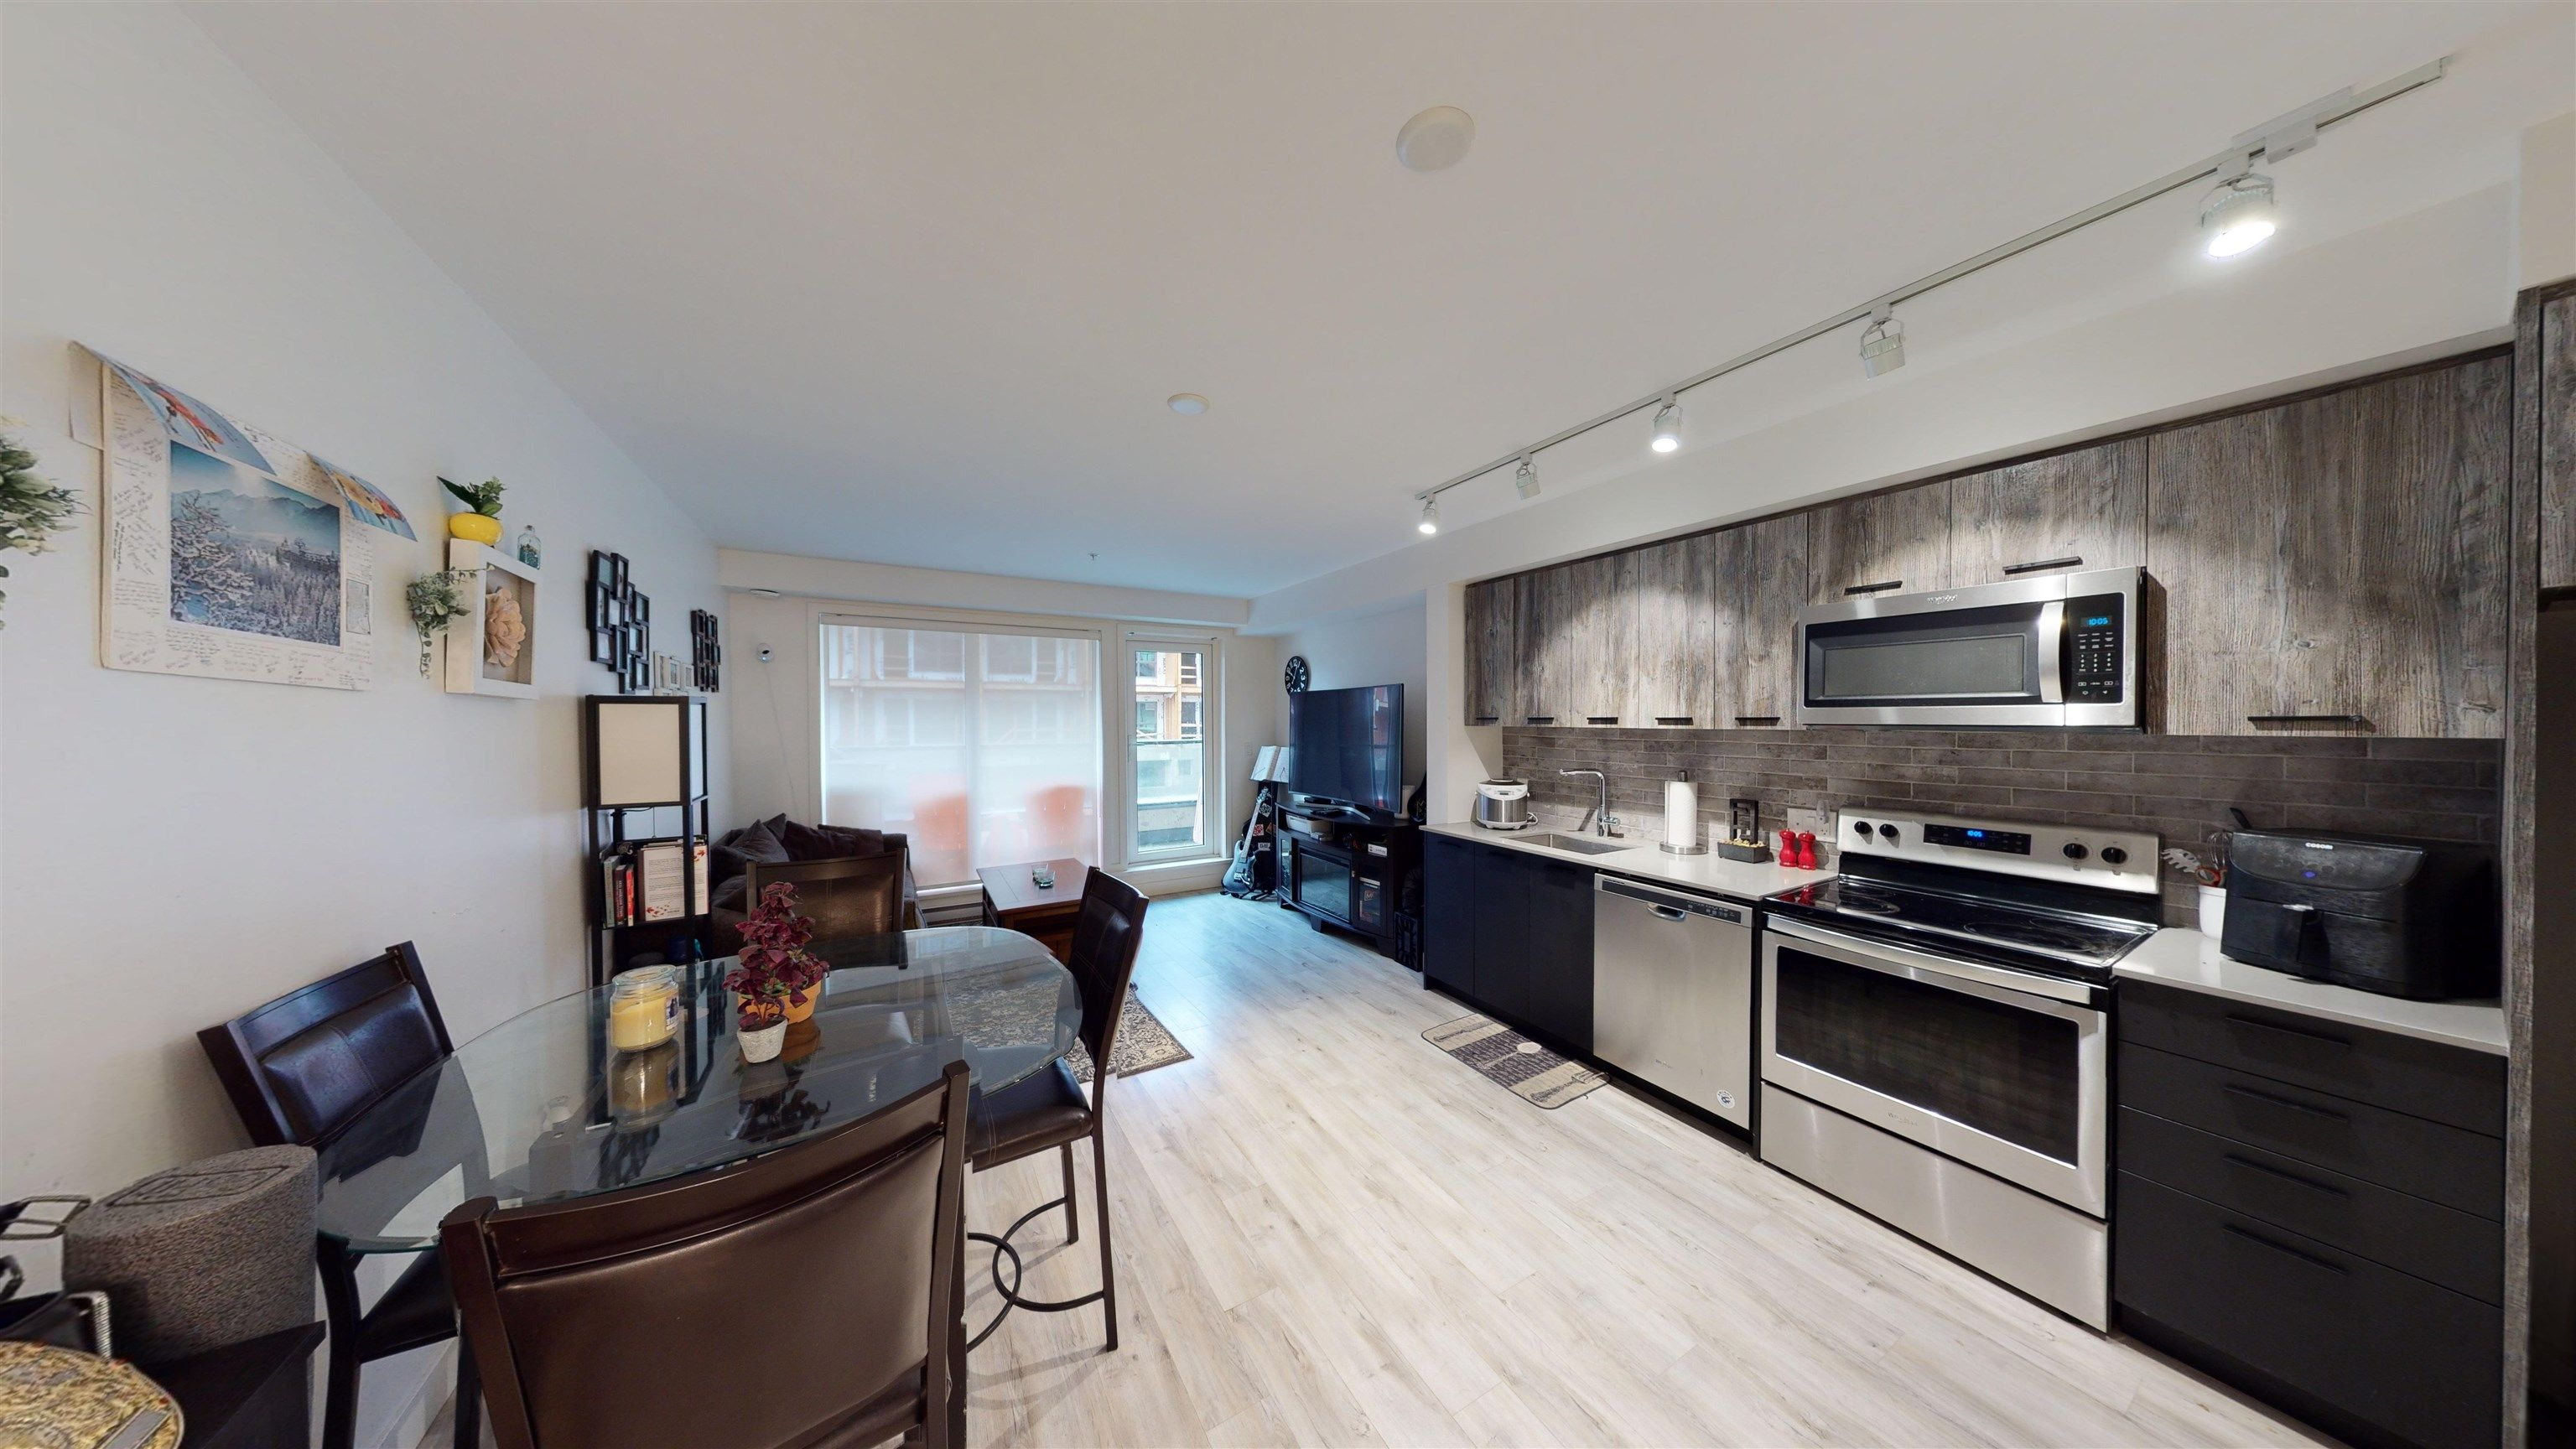 """Main Photo: 310 38013 THIRD Avenue in Squamish: Downtown SQ Condo for sale in """"THE LAUREN"""" : MLS®# R2624766"""